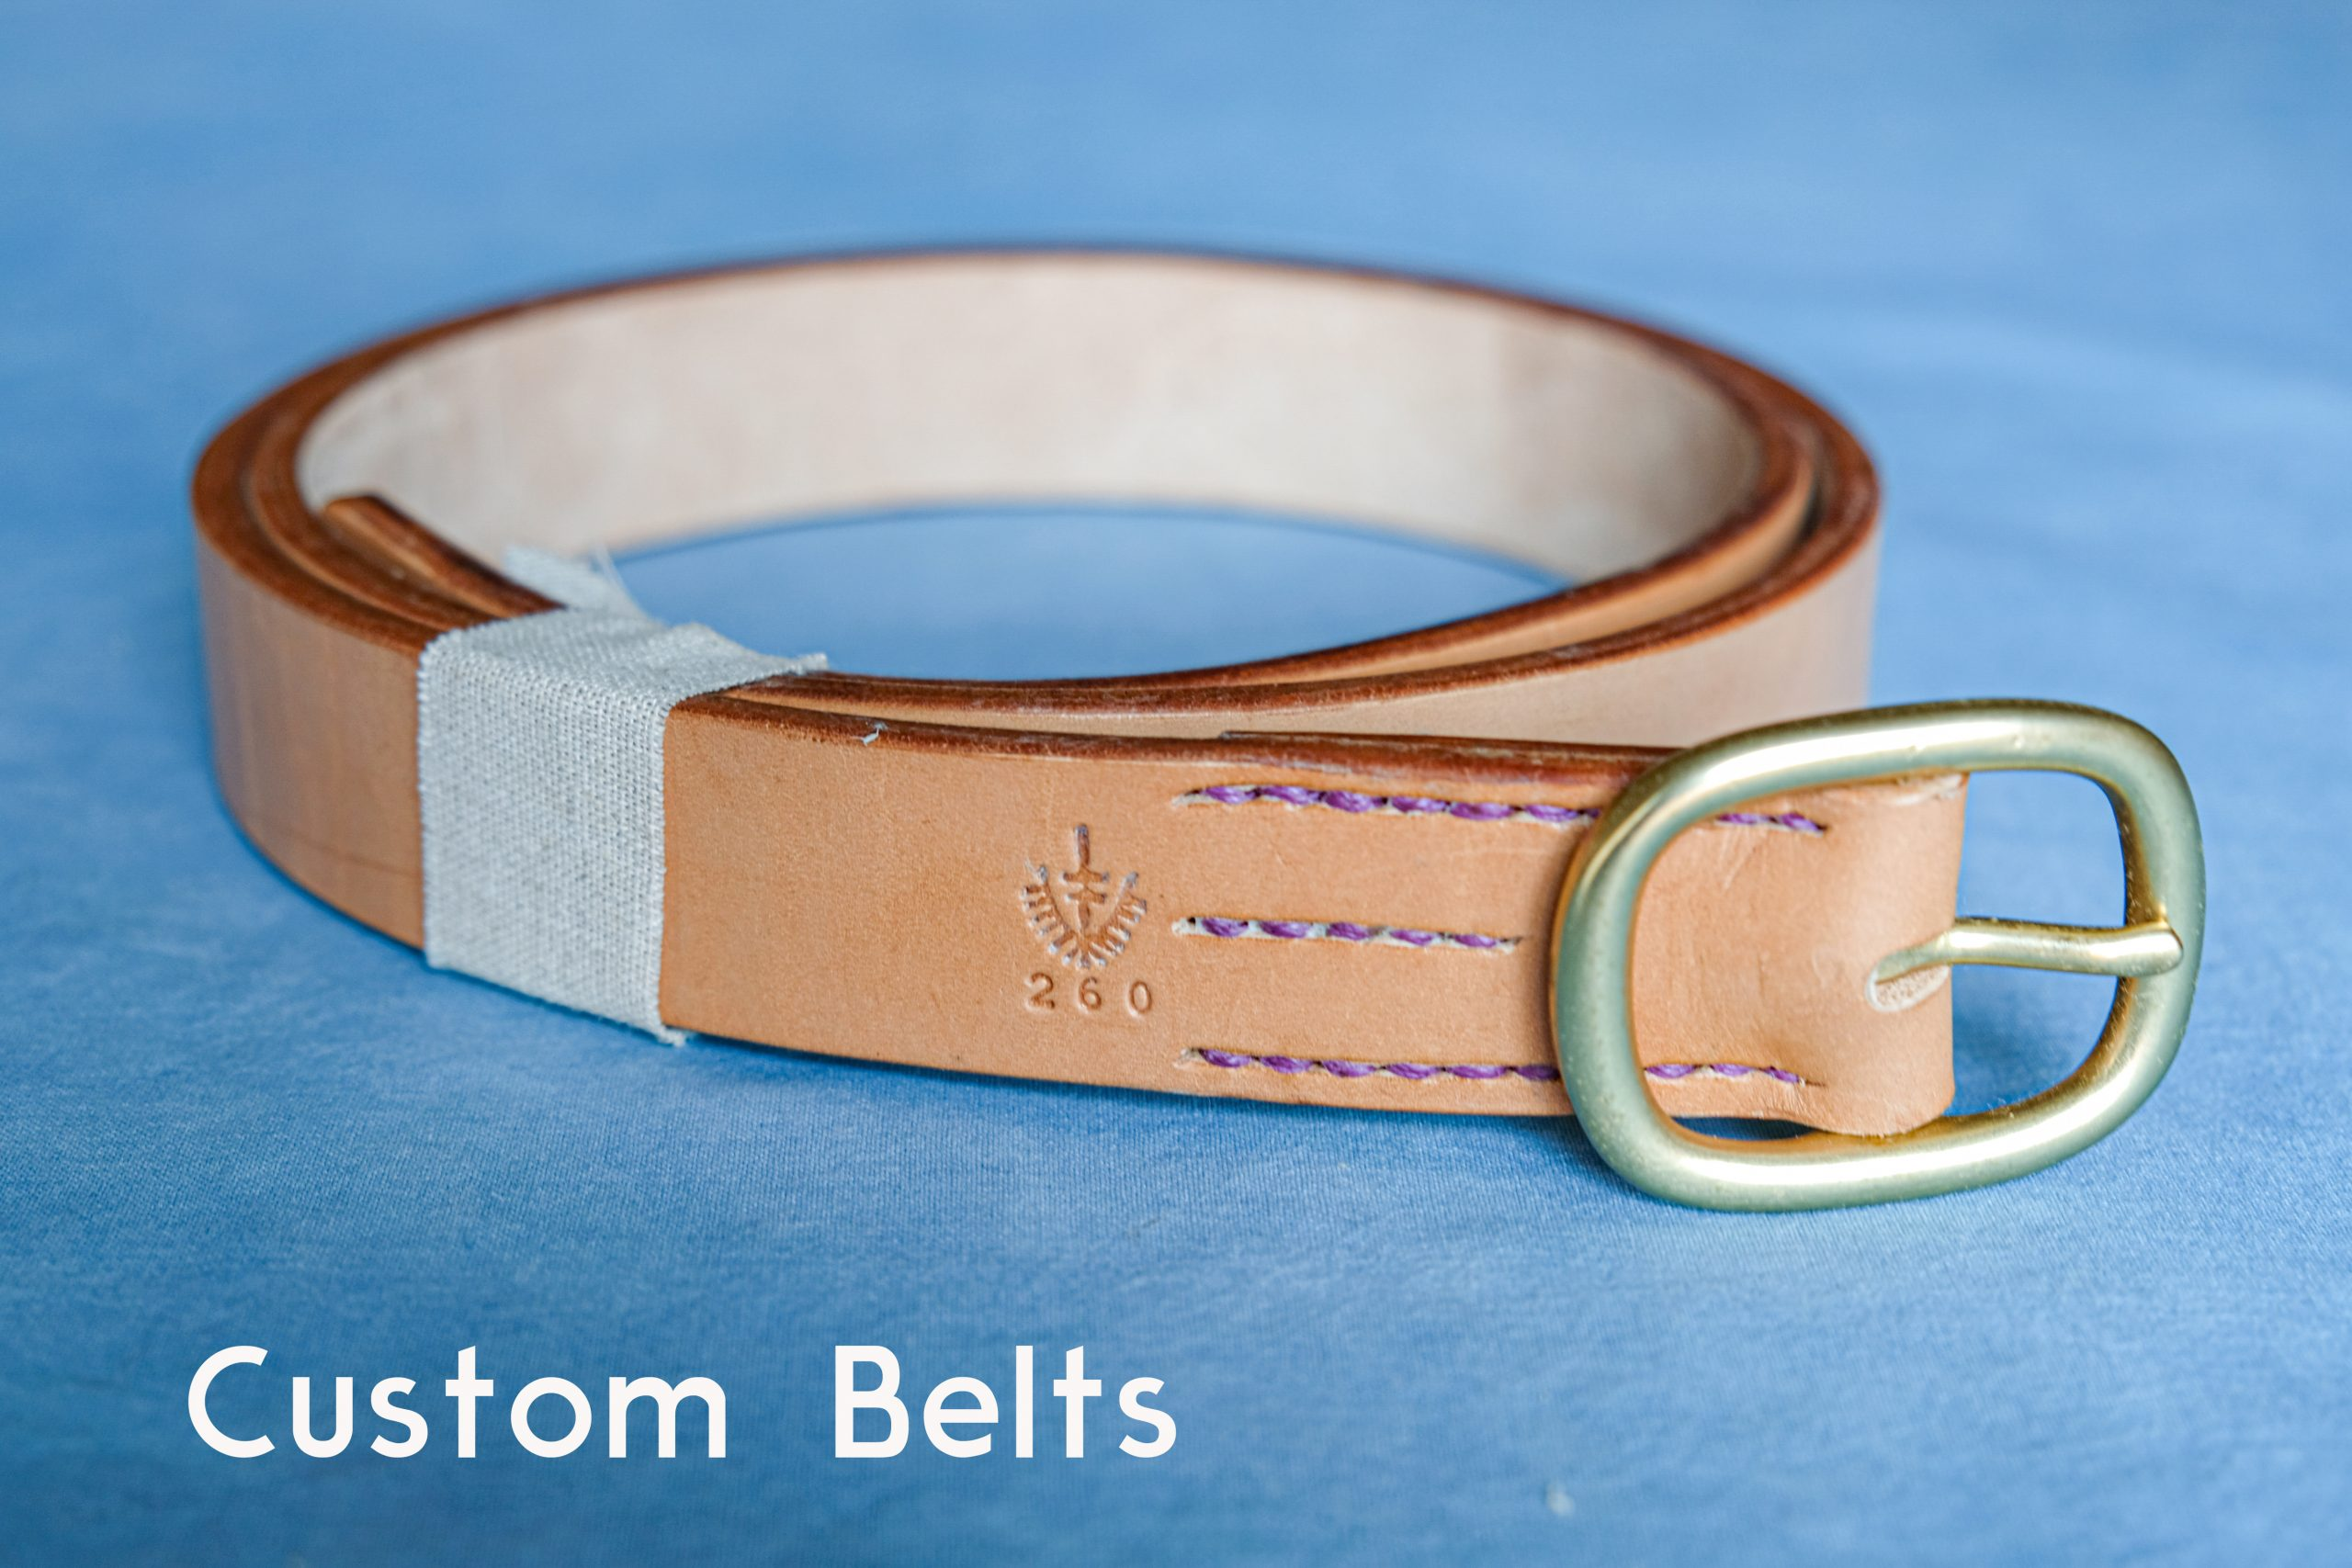 lerif designs custom leather belt with brass buckle on blue background